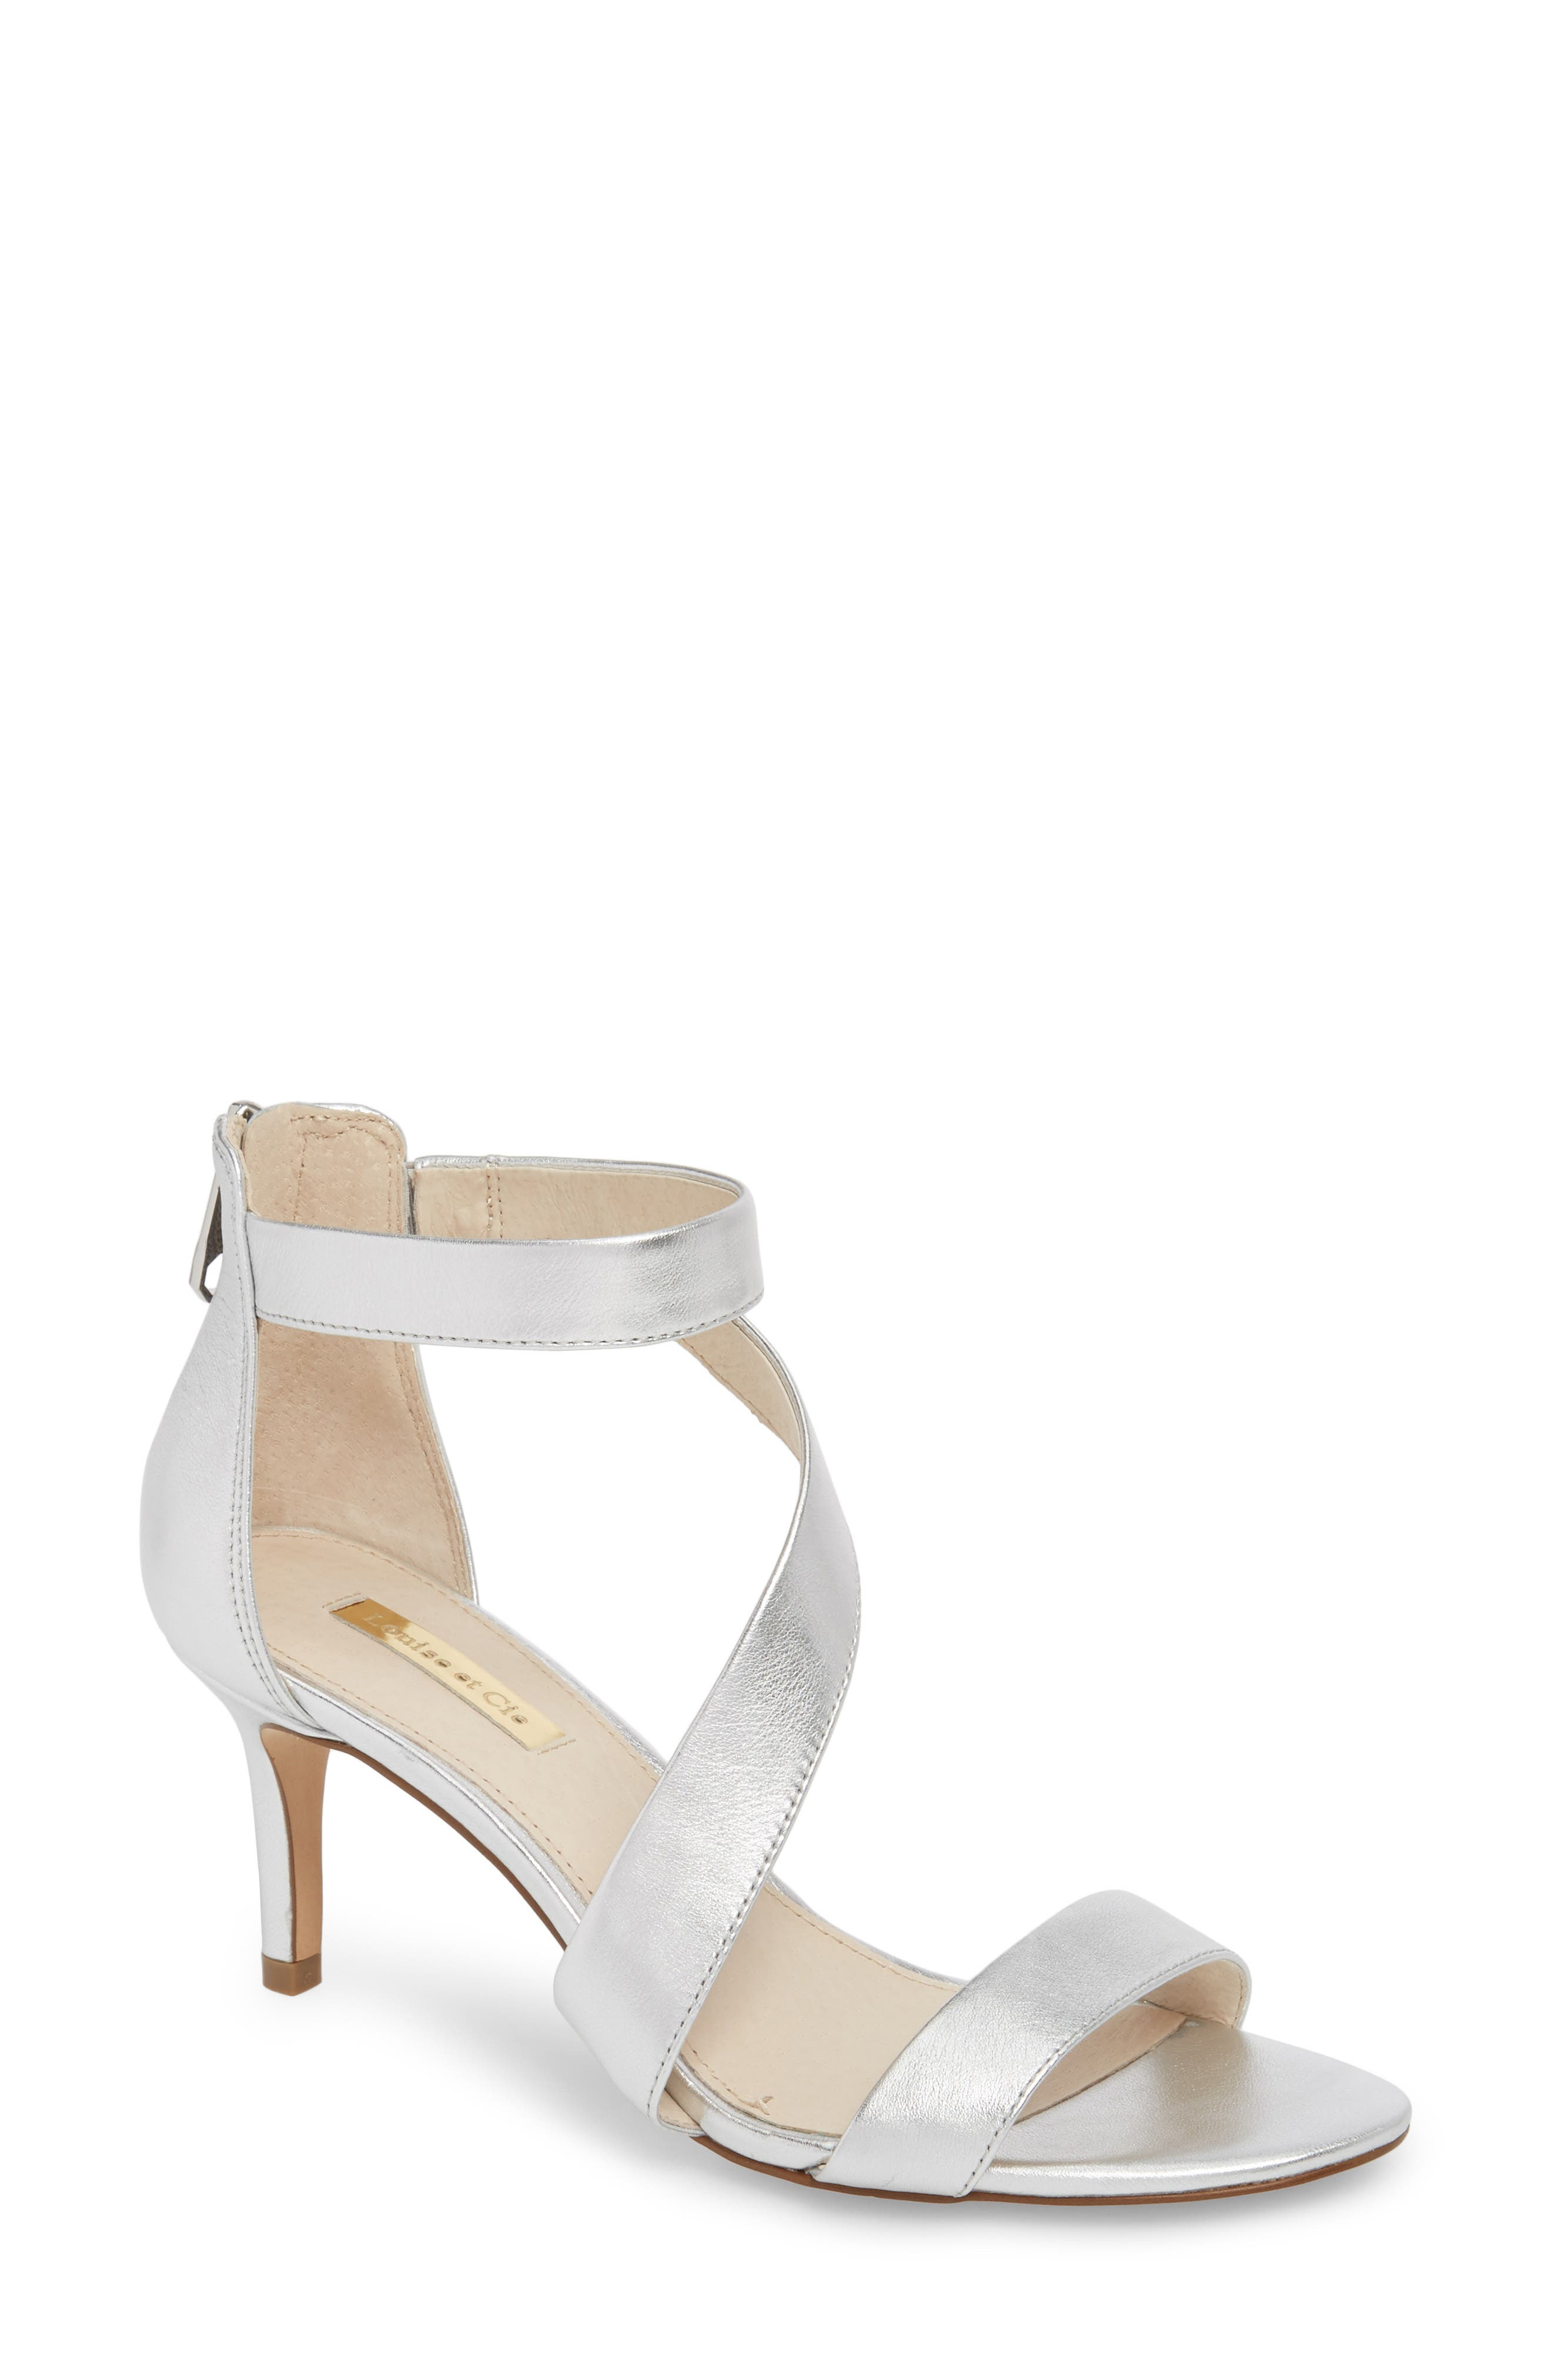 Hilio Sandal,                         Main,                         color, Berlin Sterling Leather